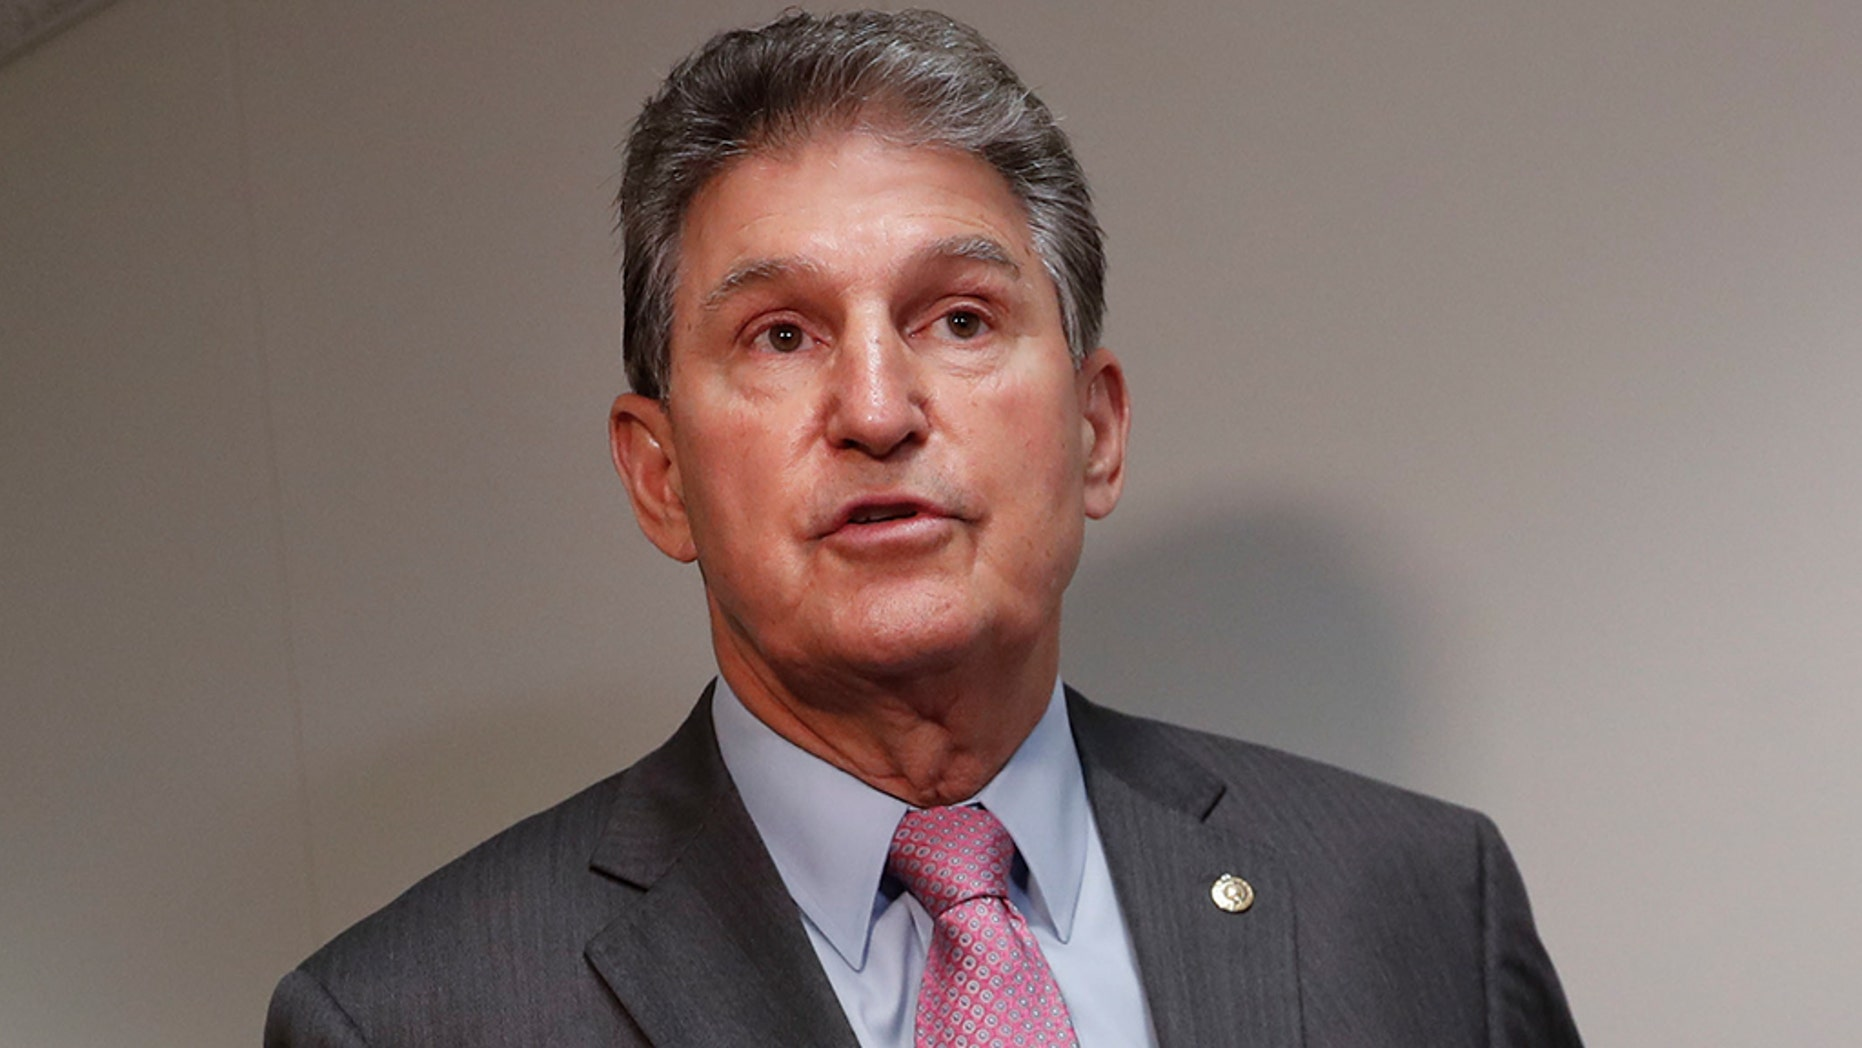 Sen. Joe Manchin on Tuesday revealed his intention to donate any paychecks he receives during the ongoing partial government shutdown to food banks in his home state.